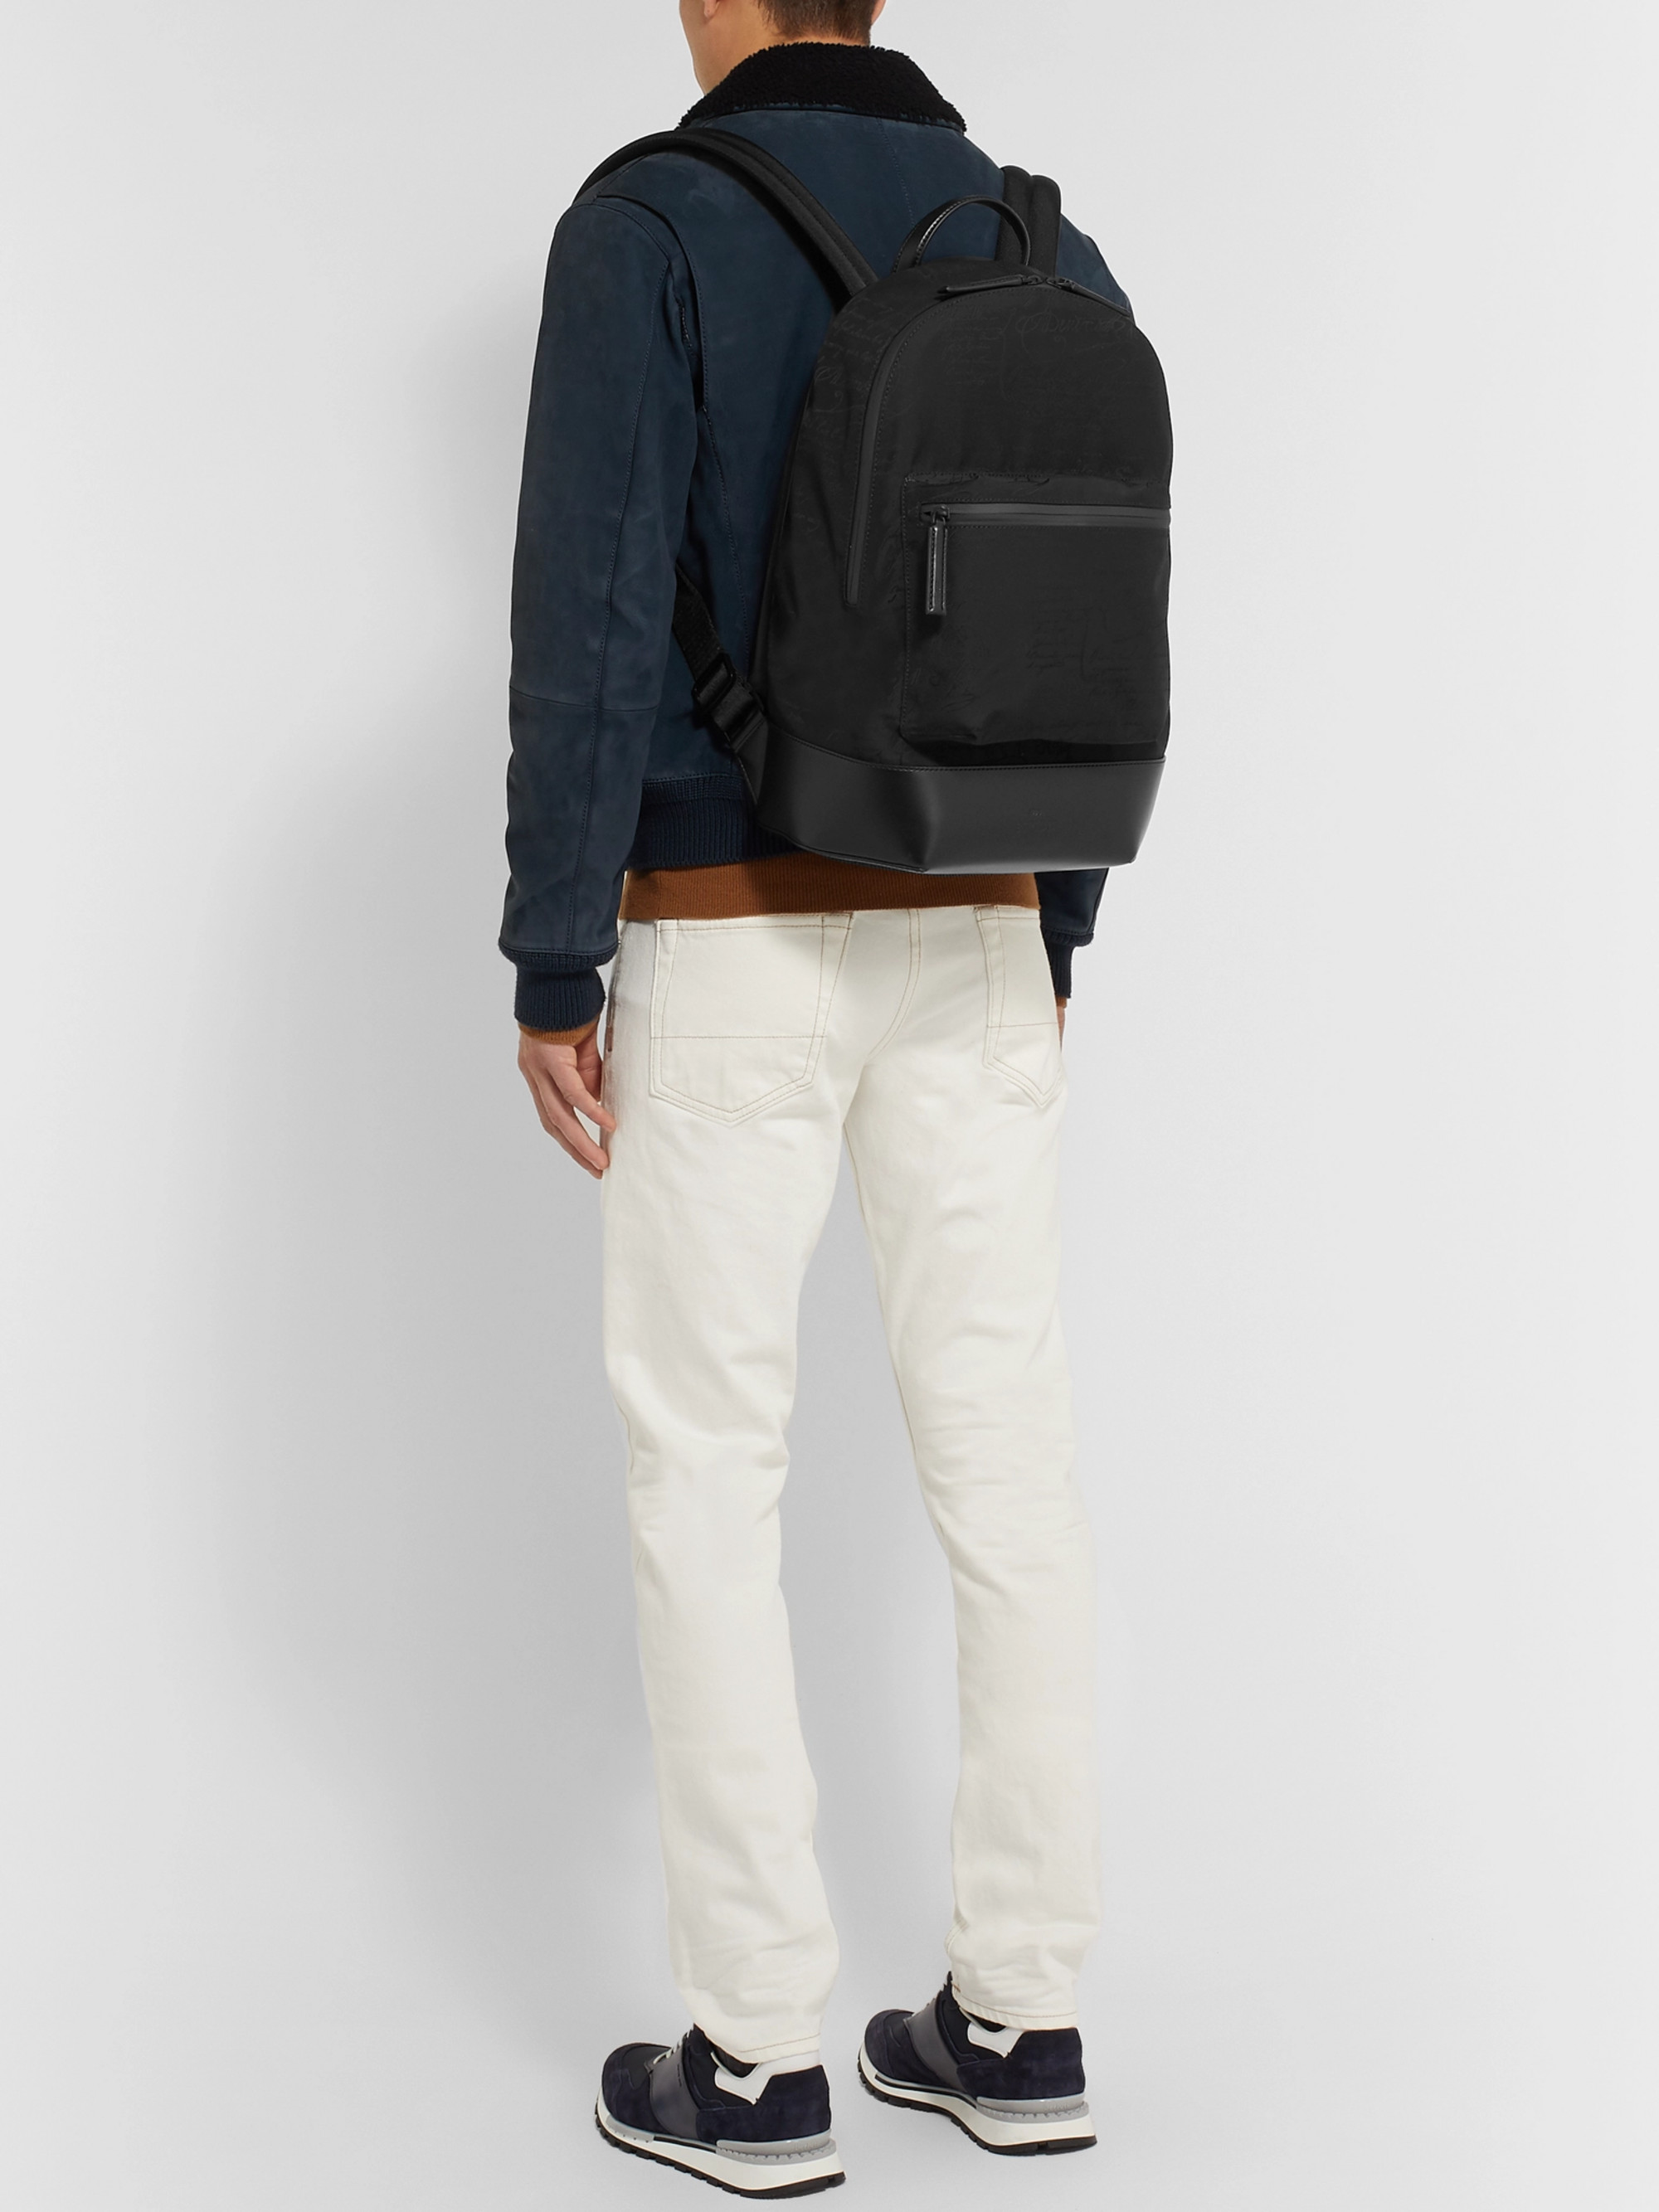 Berluti Volume Leather-Trimmed Nylon Backpack